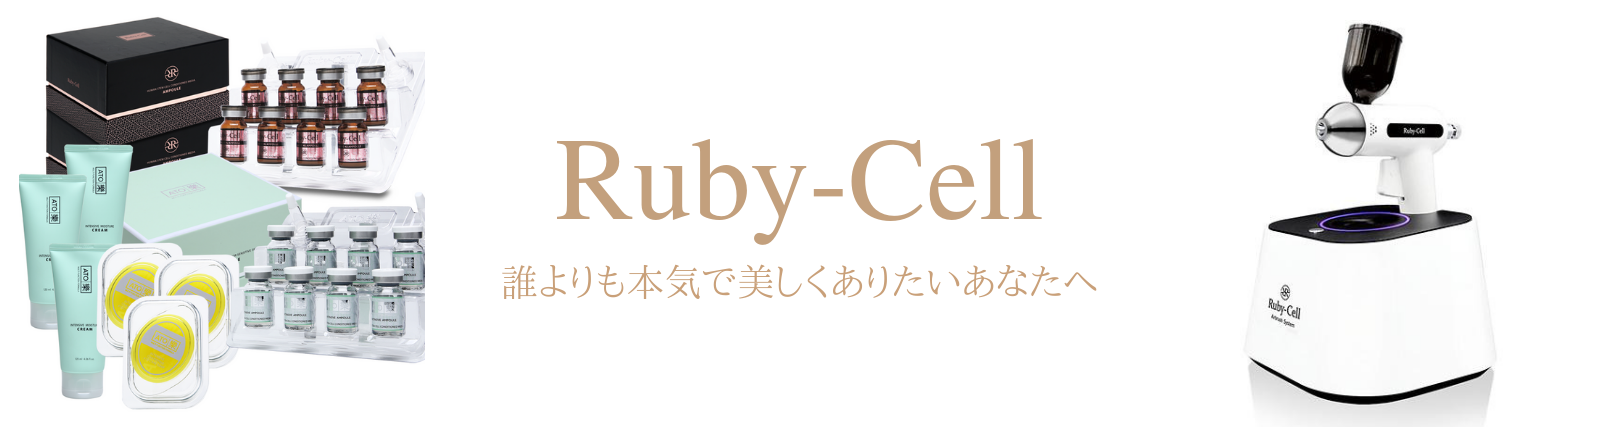 RubyCell-Japan